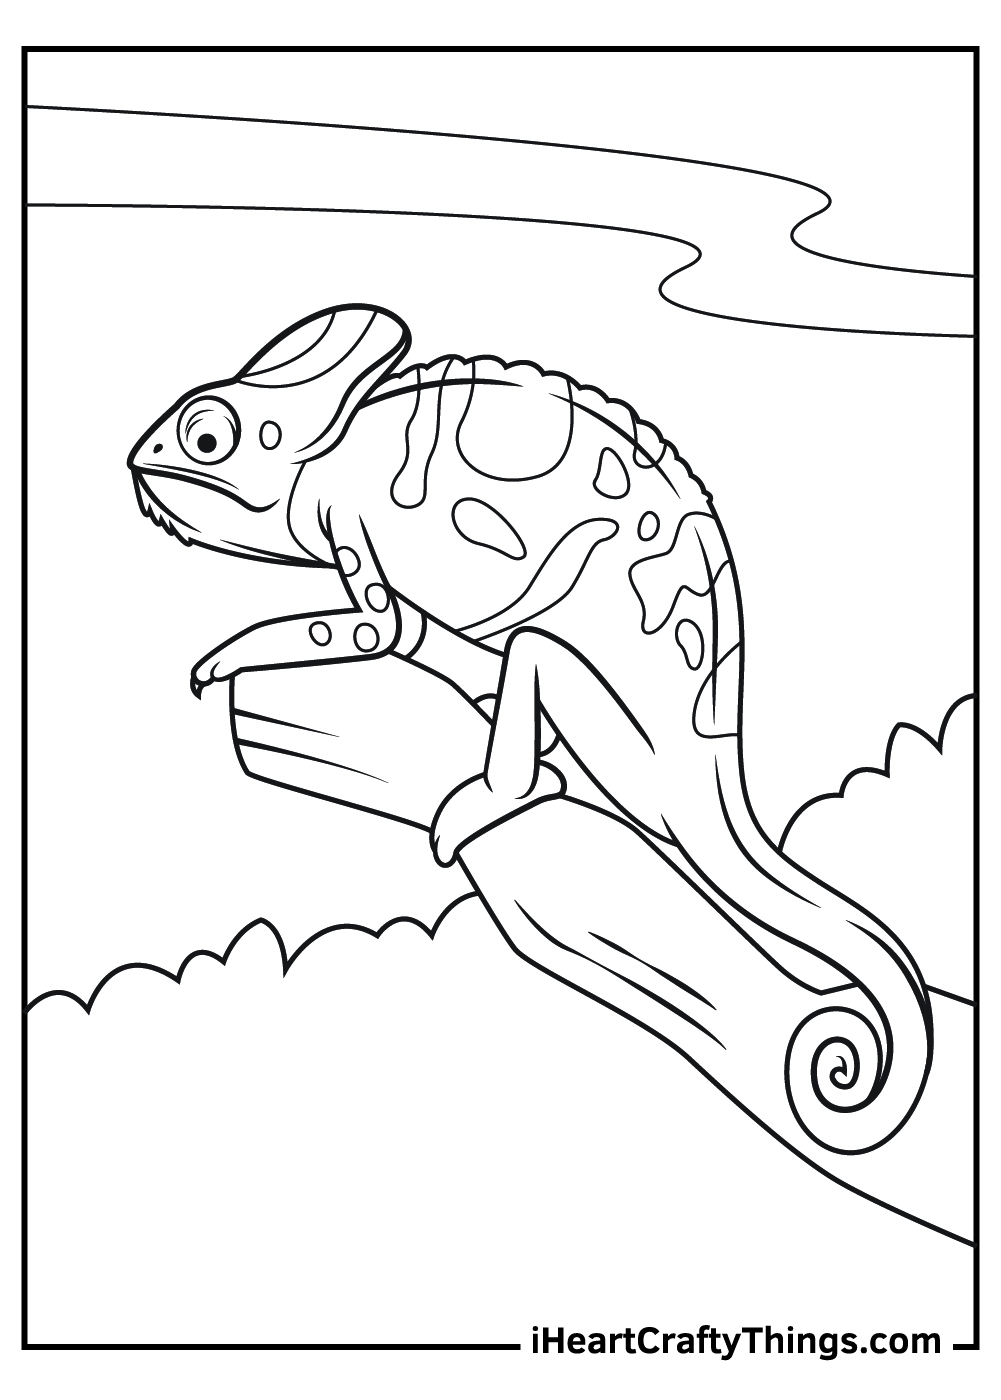 free printable realistic chameleon coloring pages